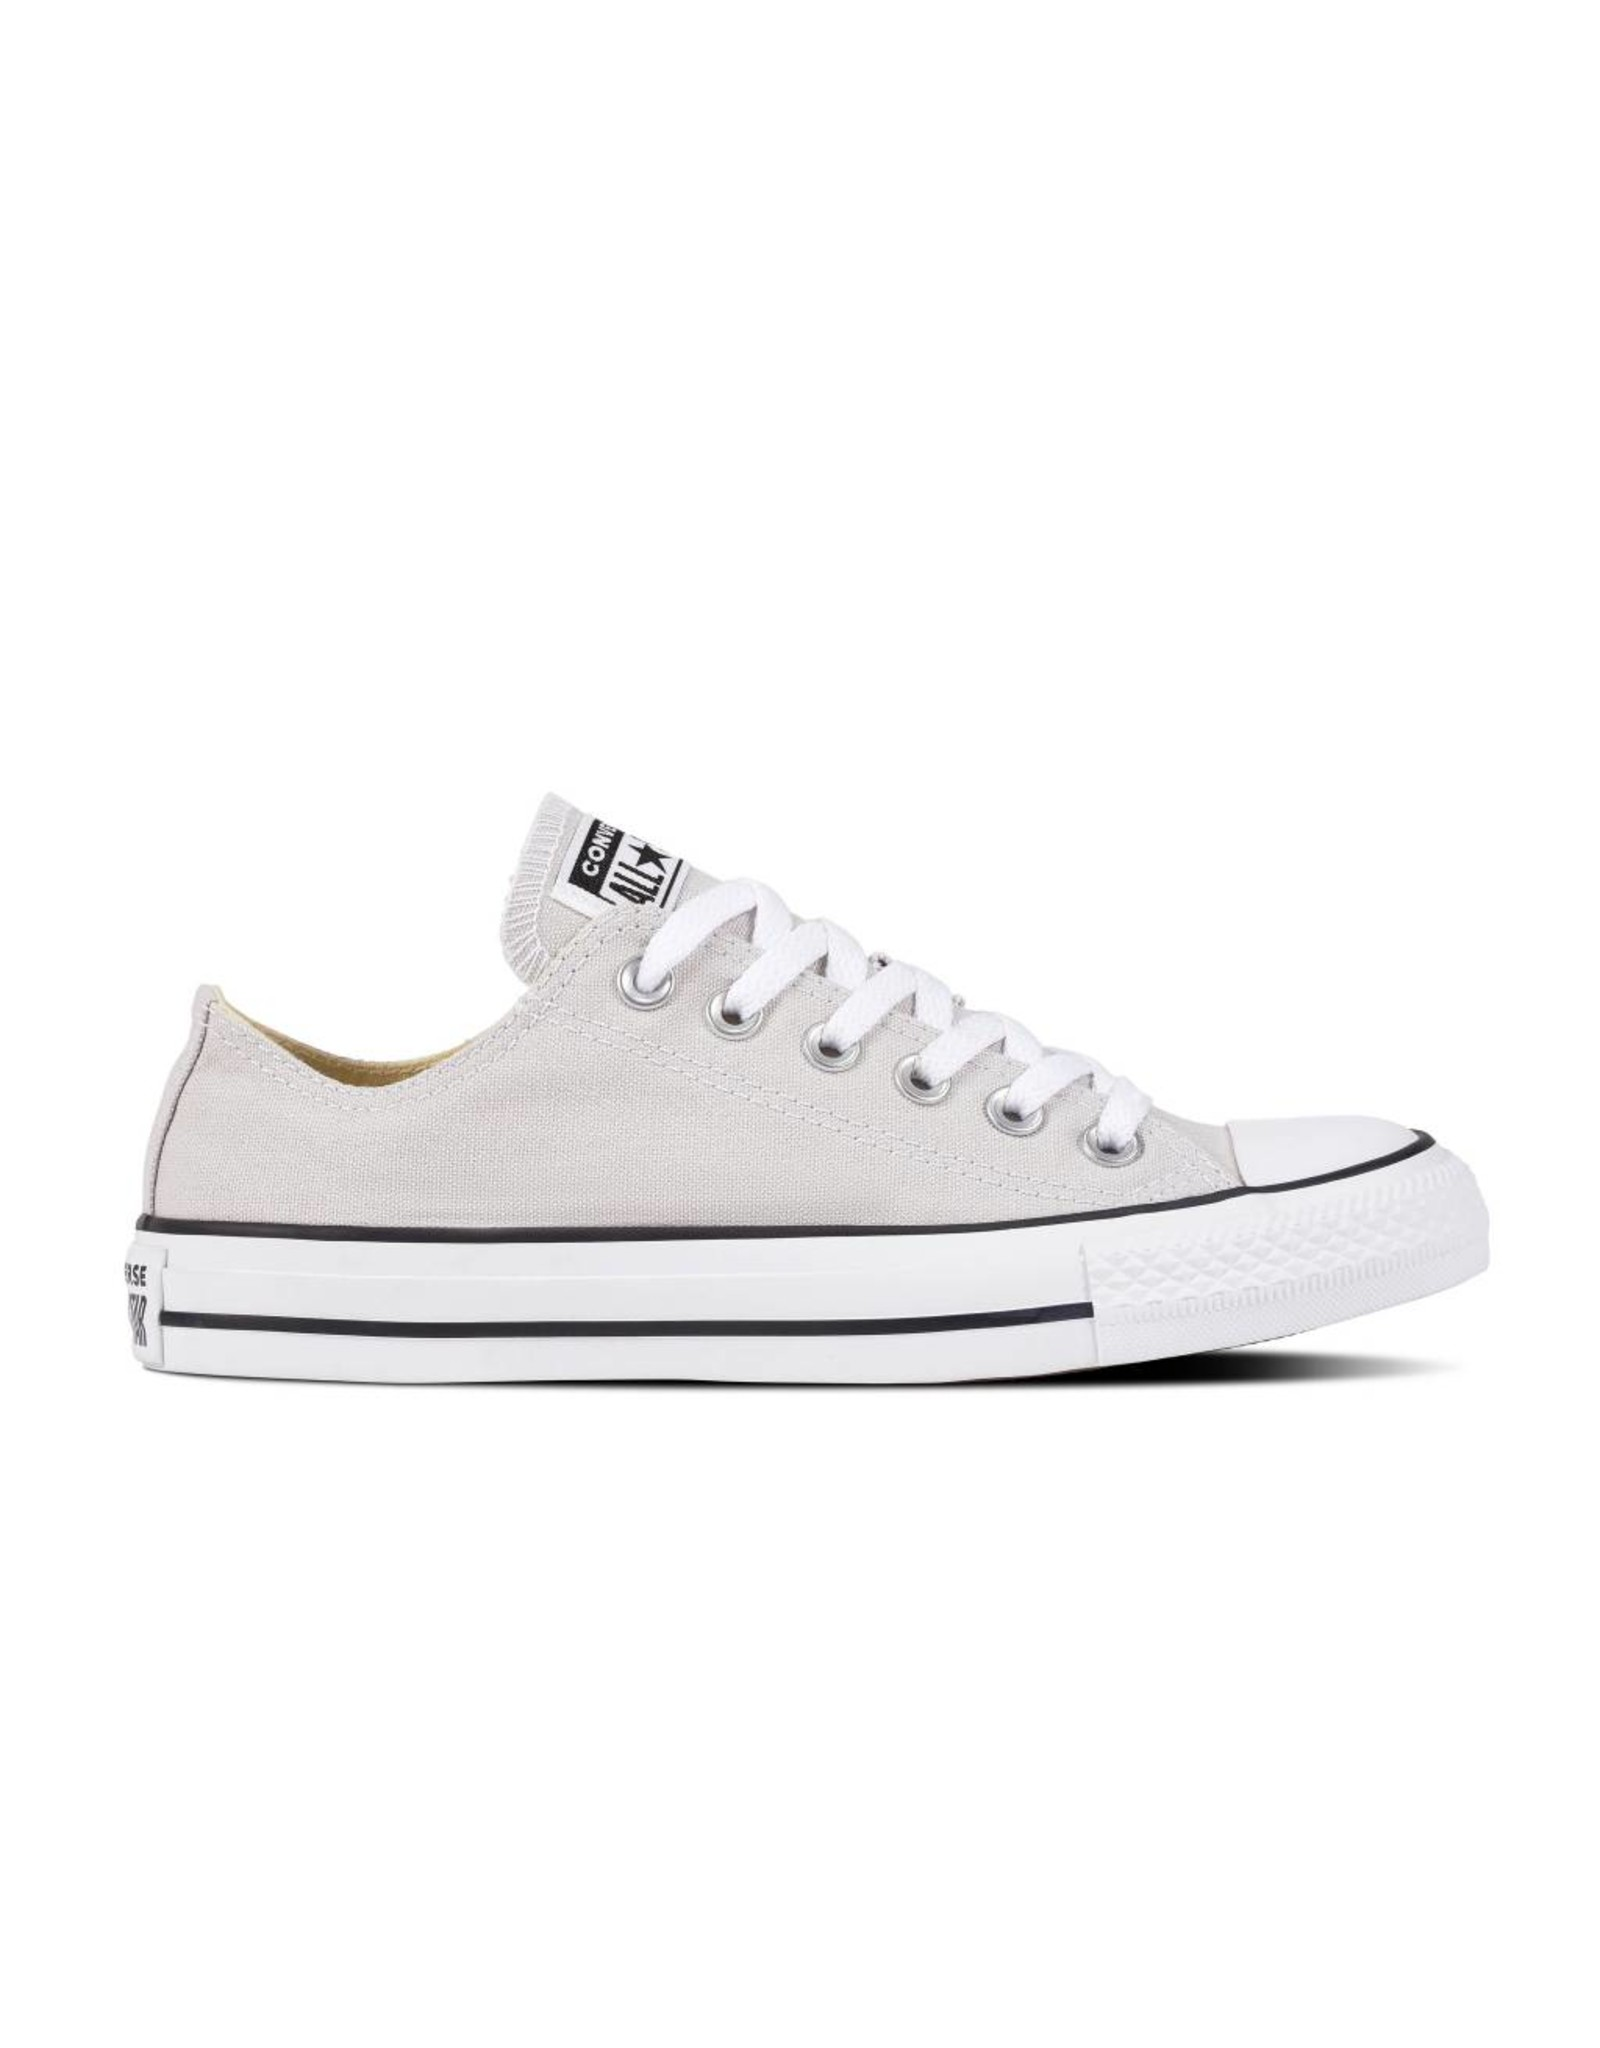 CONVERSE CHUCK TAYLOR OX MOUSE C12MOS -161423C